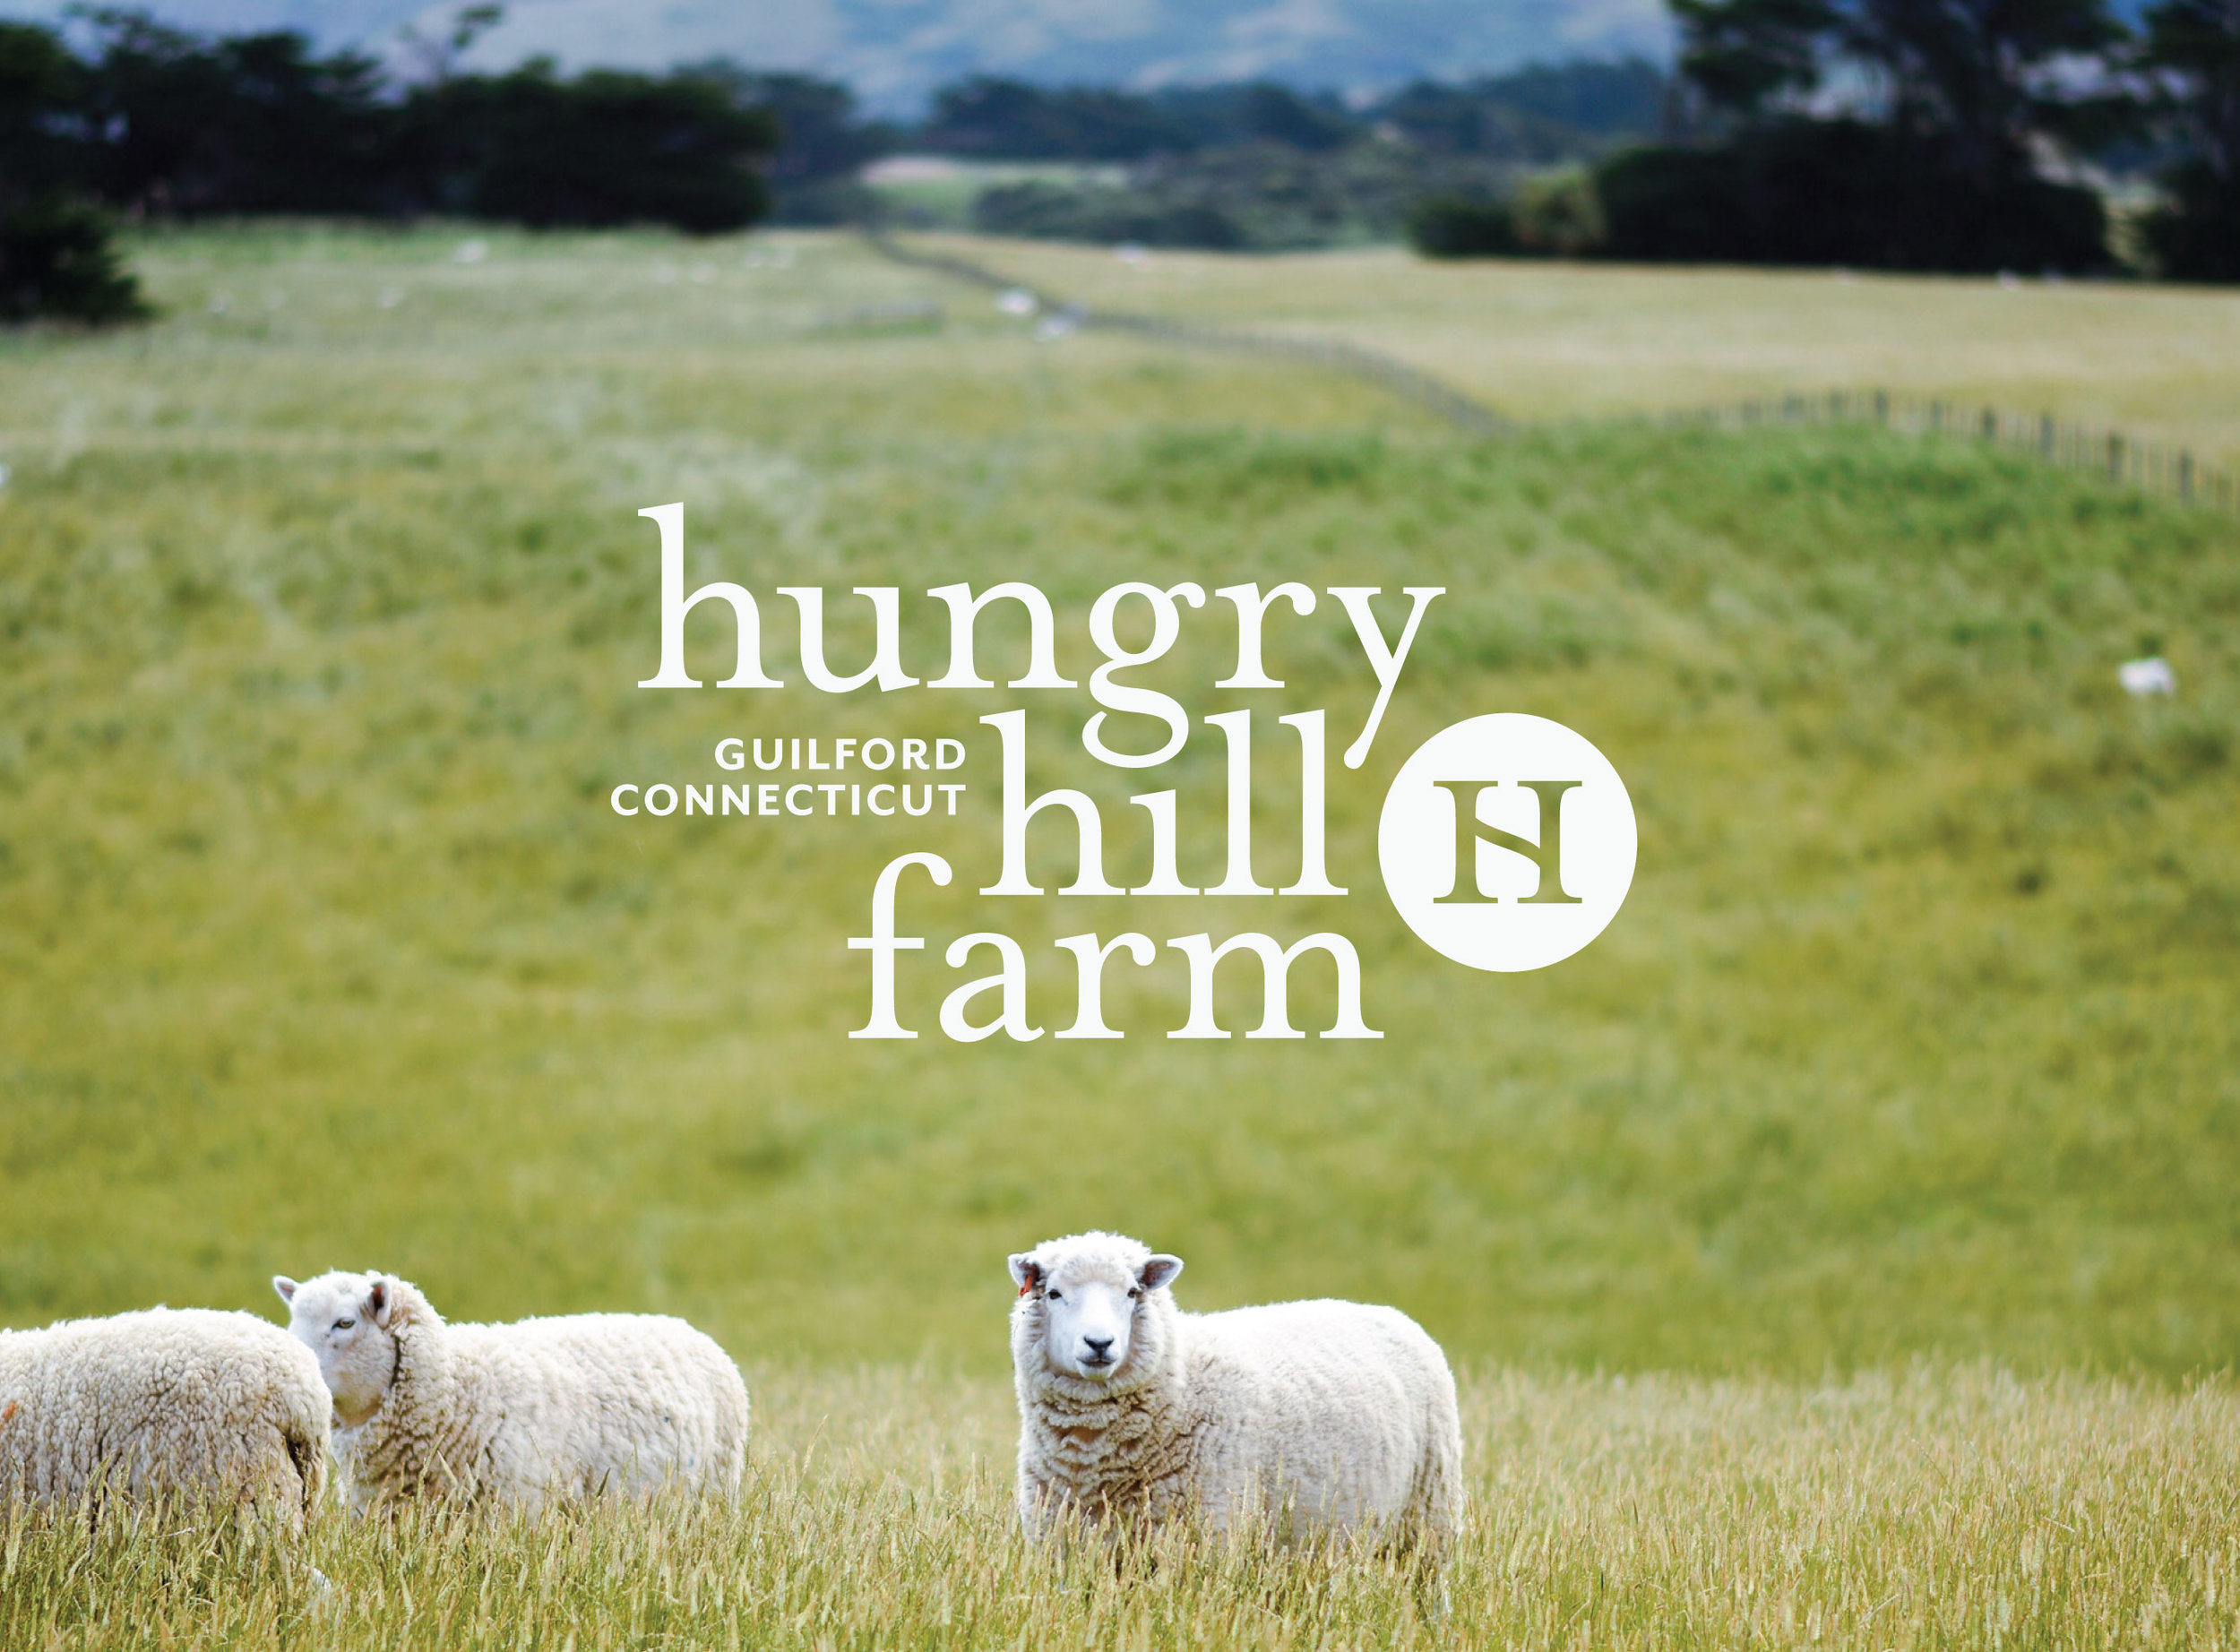 hungrayhillfarm_mock-up_logo_01.jpg